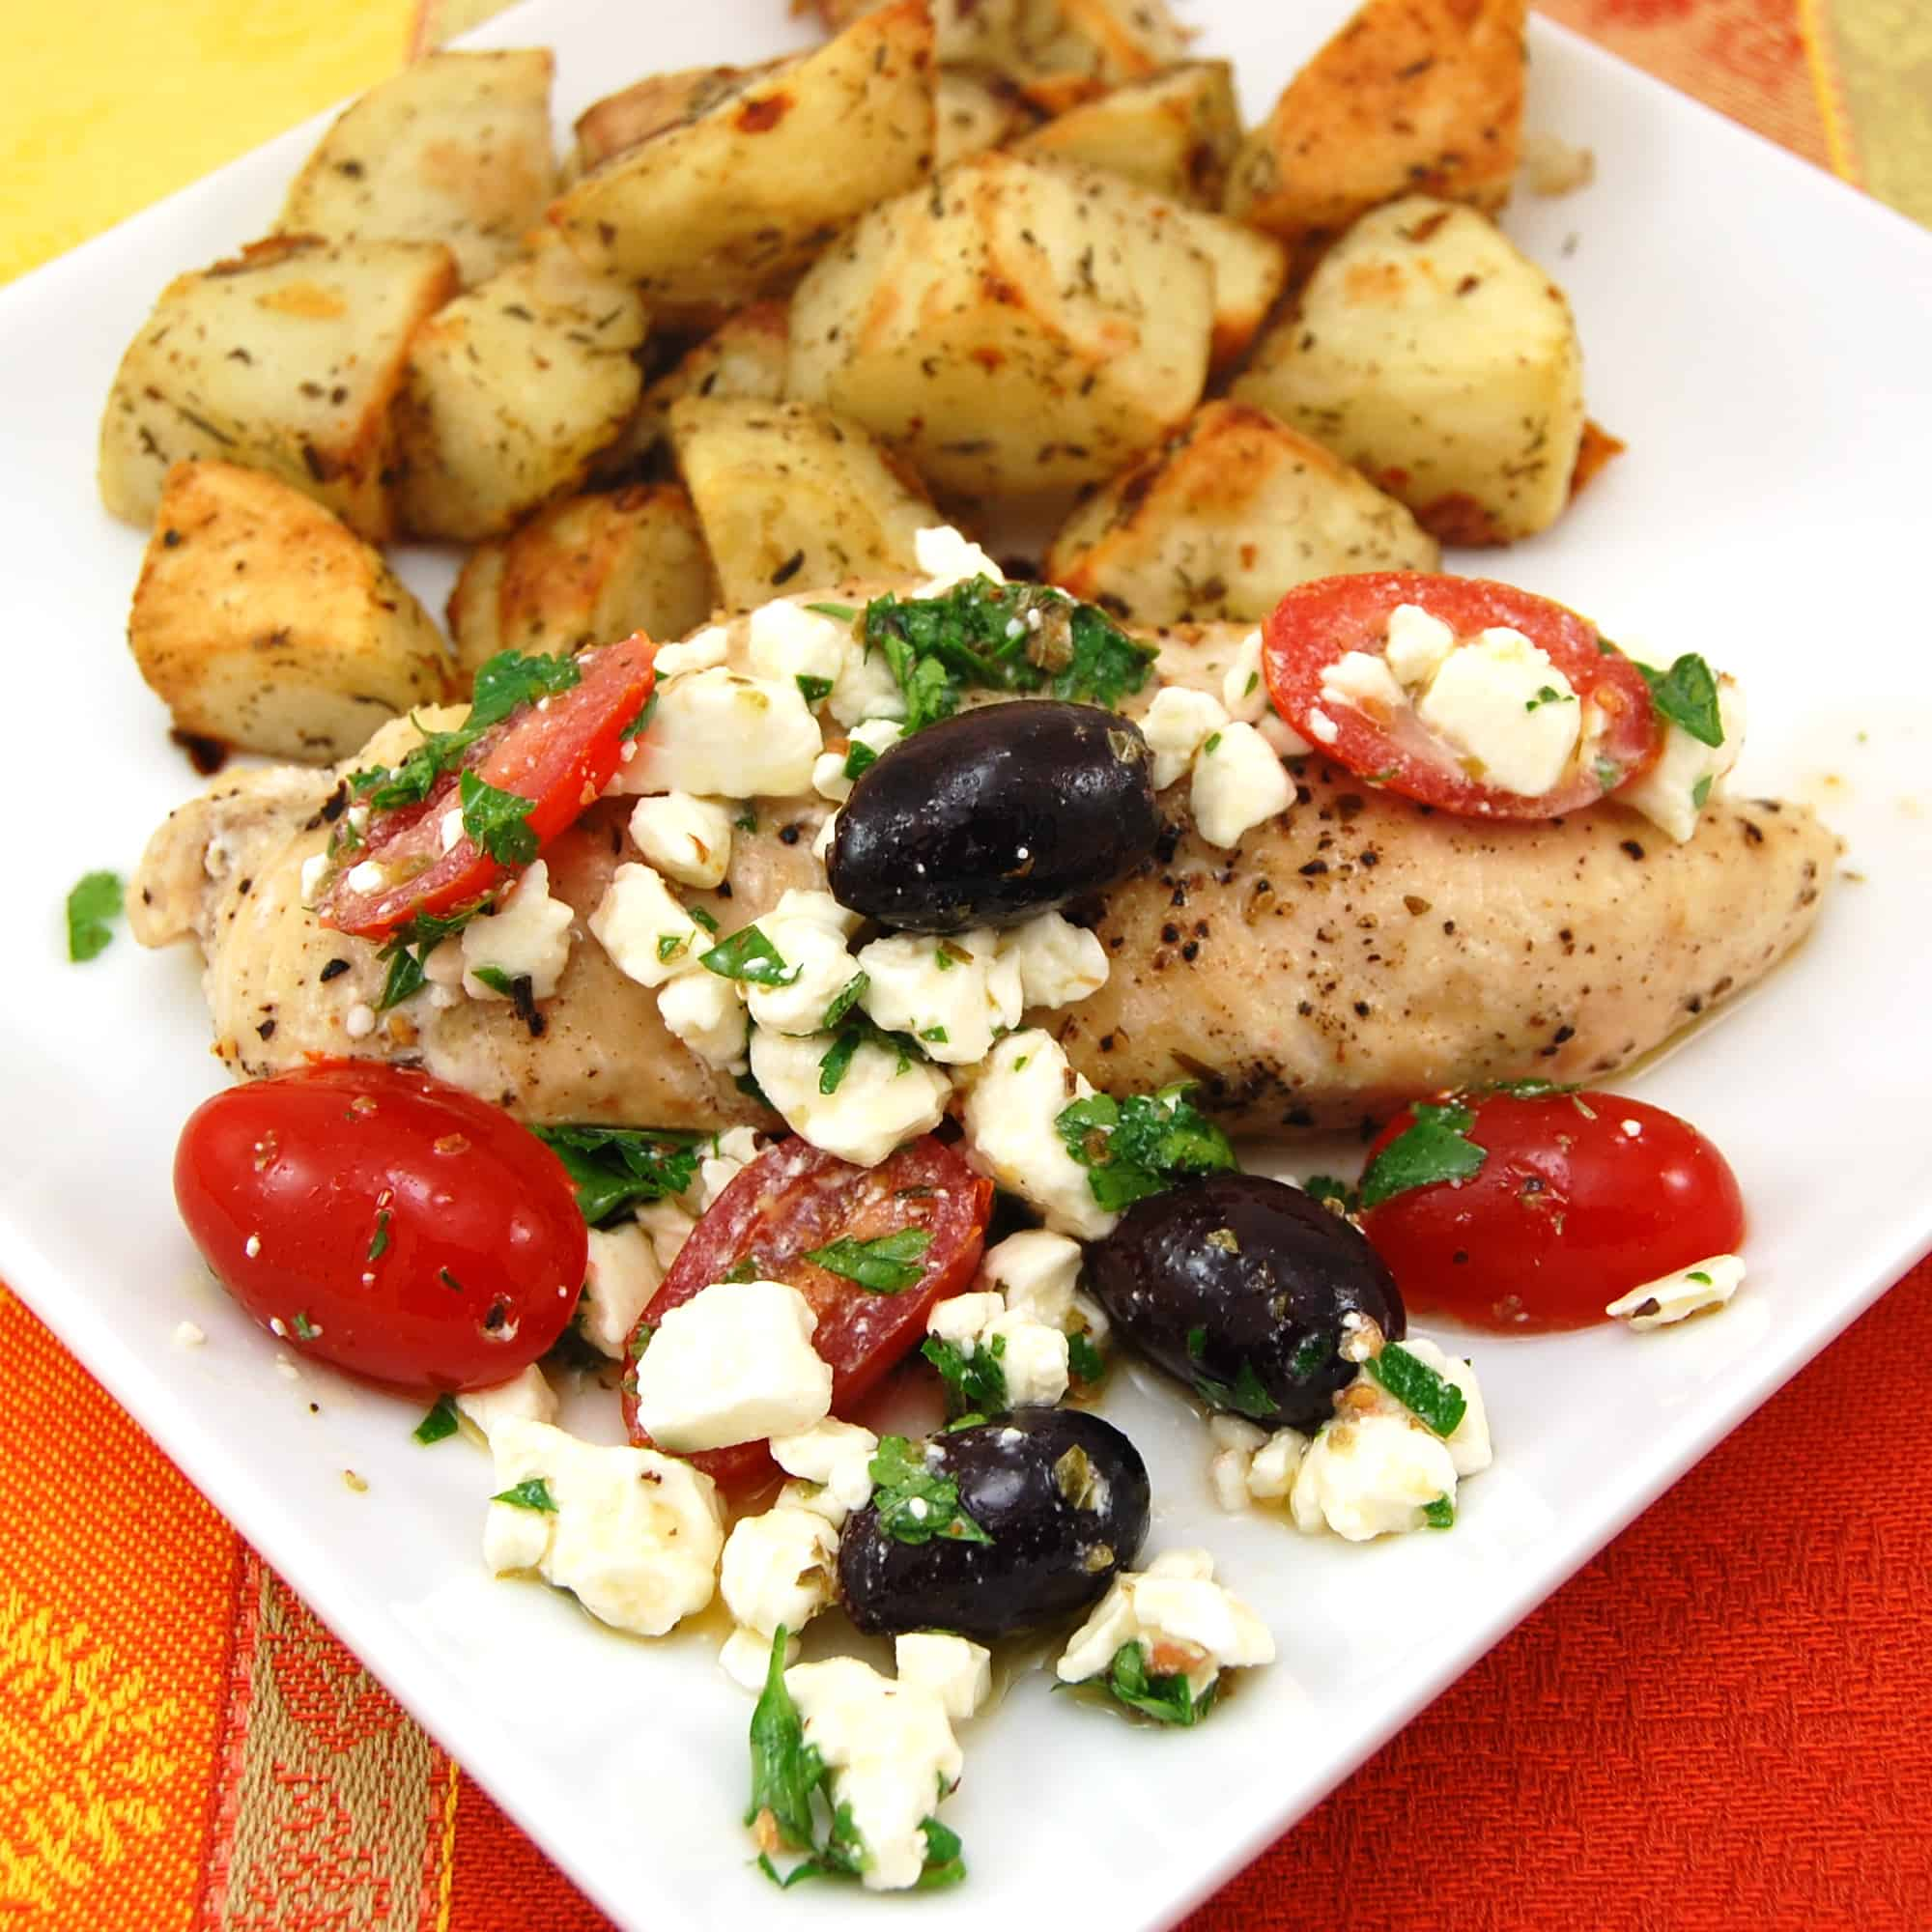 Greek chicken with potatoes, tomatoes and olives